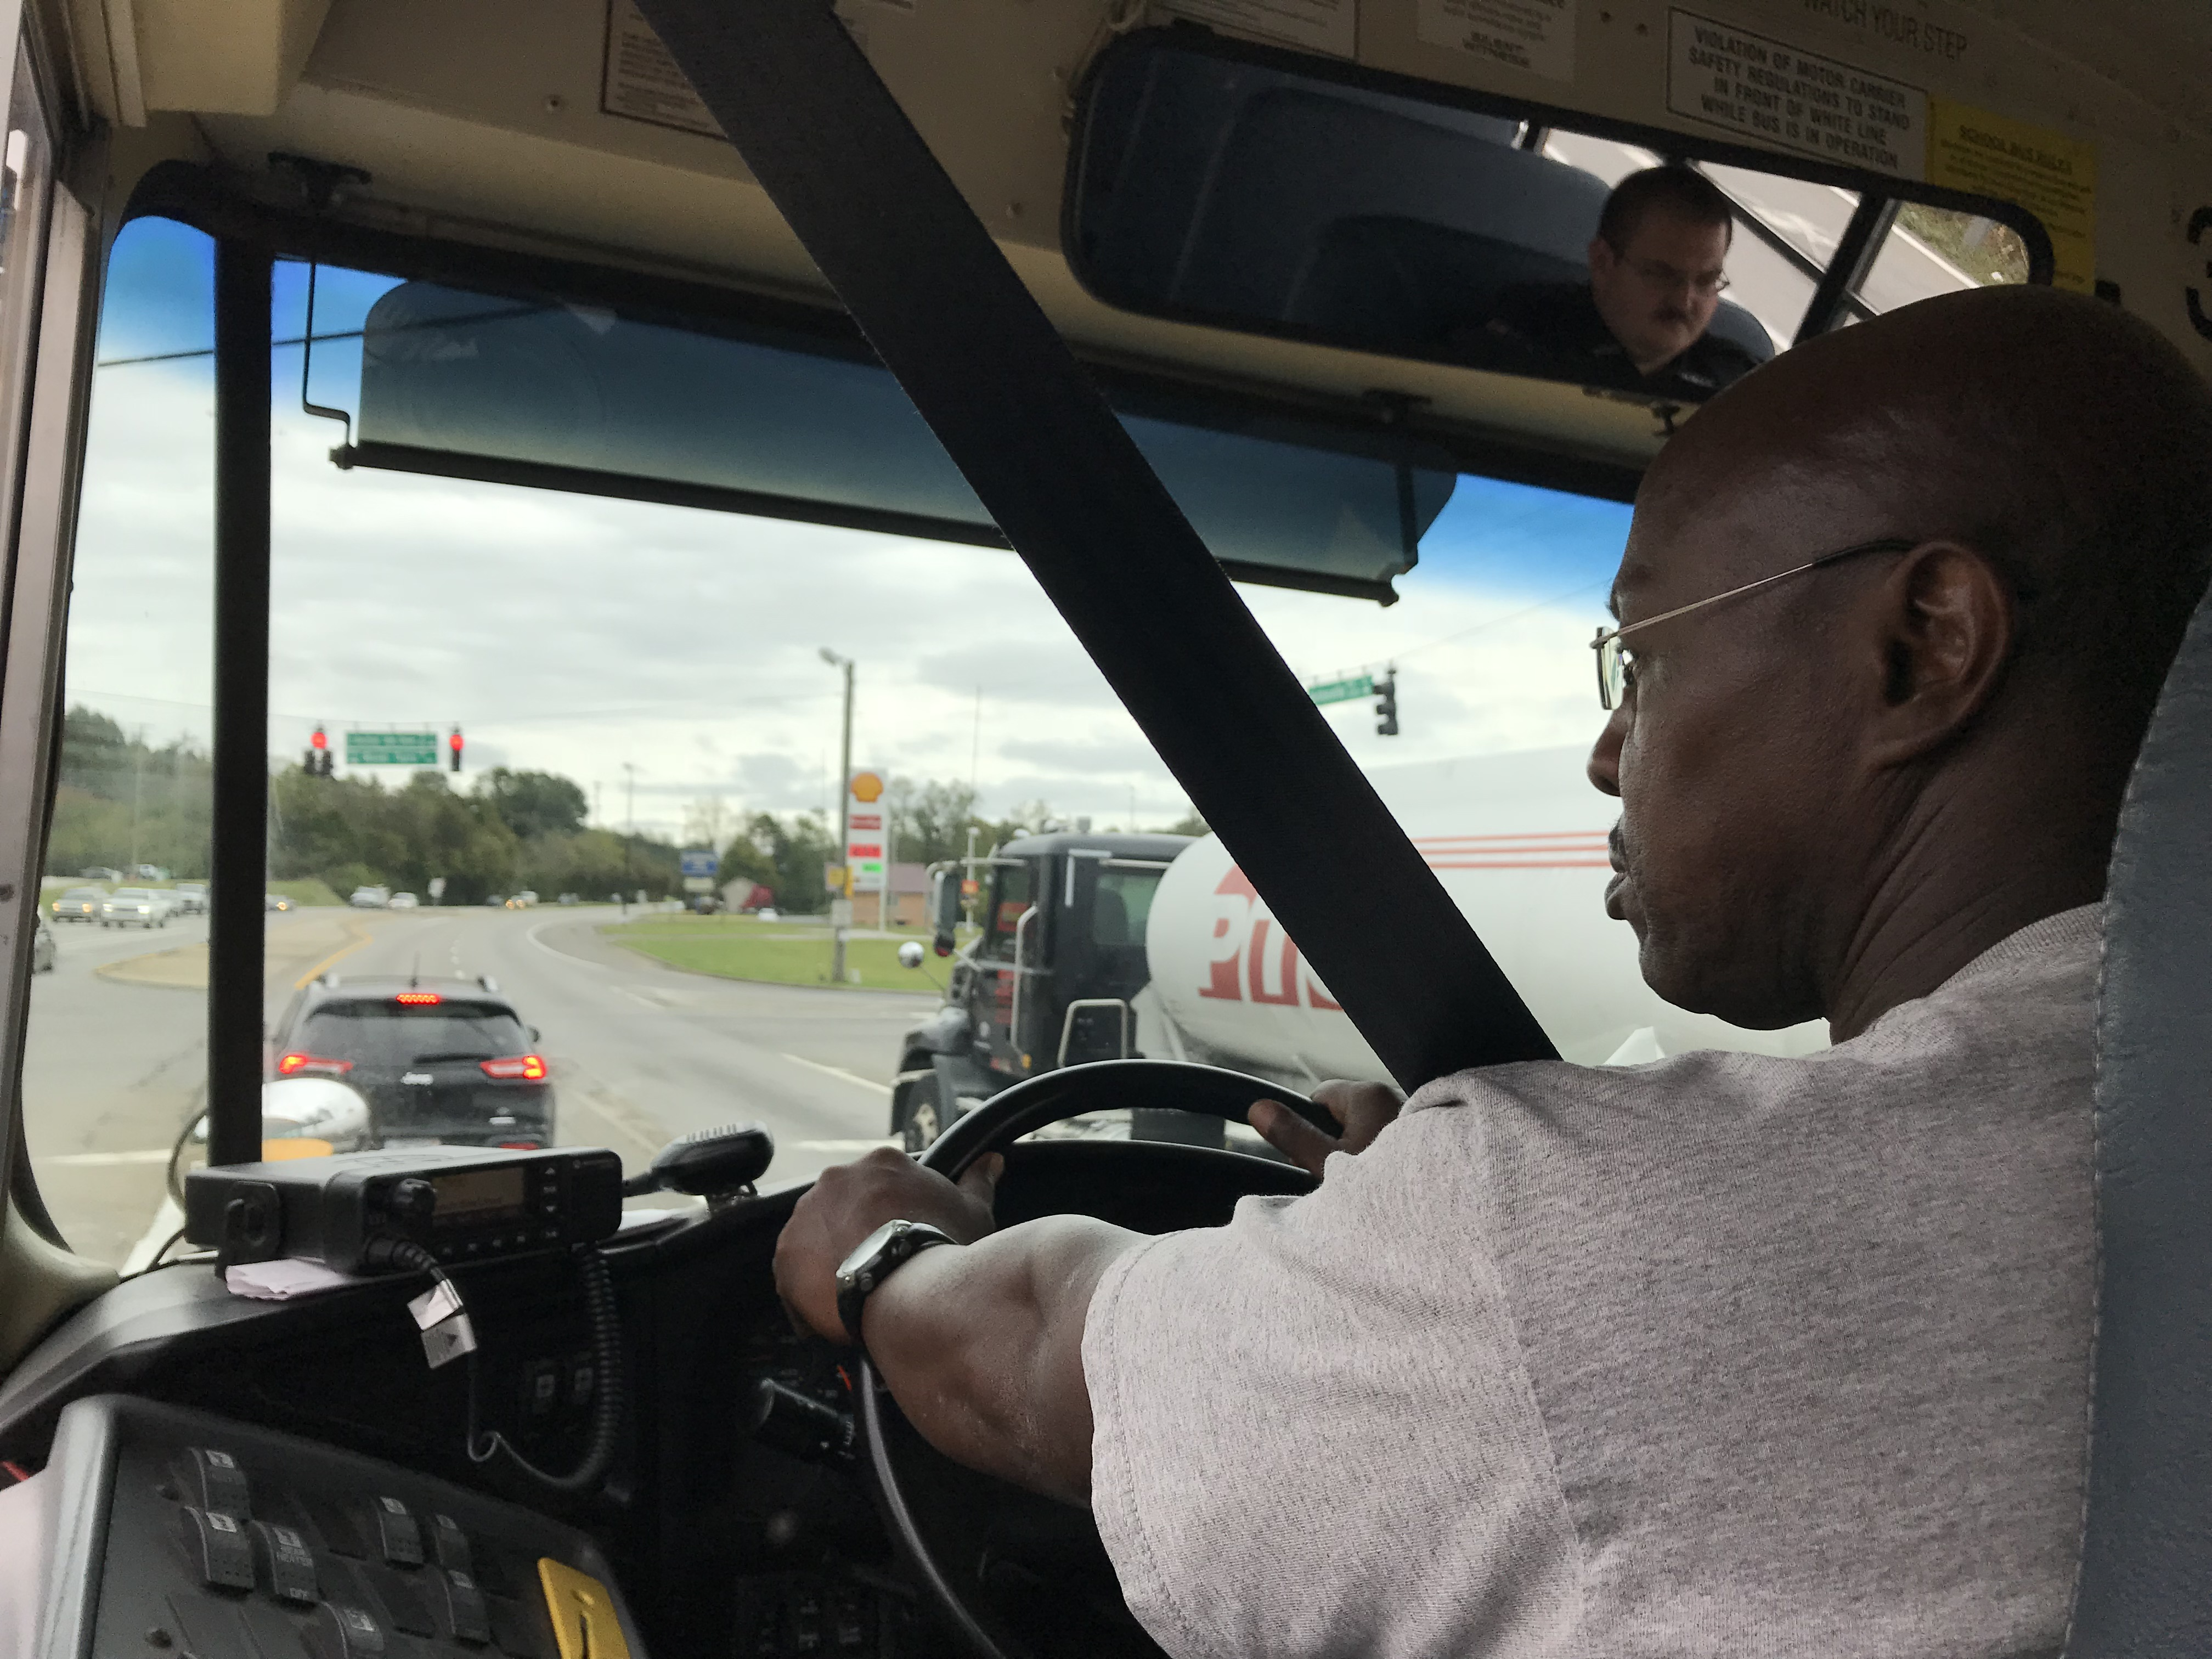 Lynch Bus Lines driver Terry Holloway sits in the driver's seat during a check ride on October 16, 2018. Benjamin Honaker, of the Knox County Schools Security Division, is pictured in the rearview mirror.